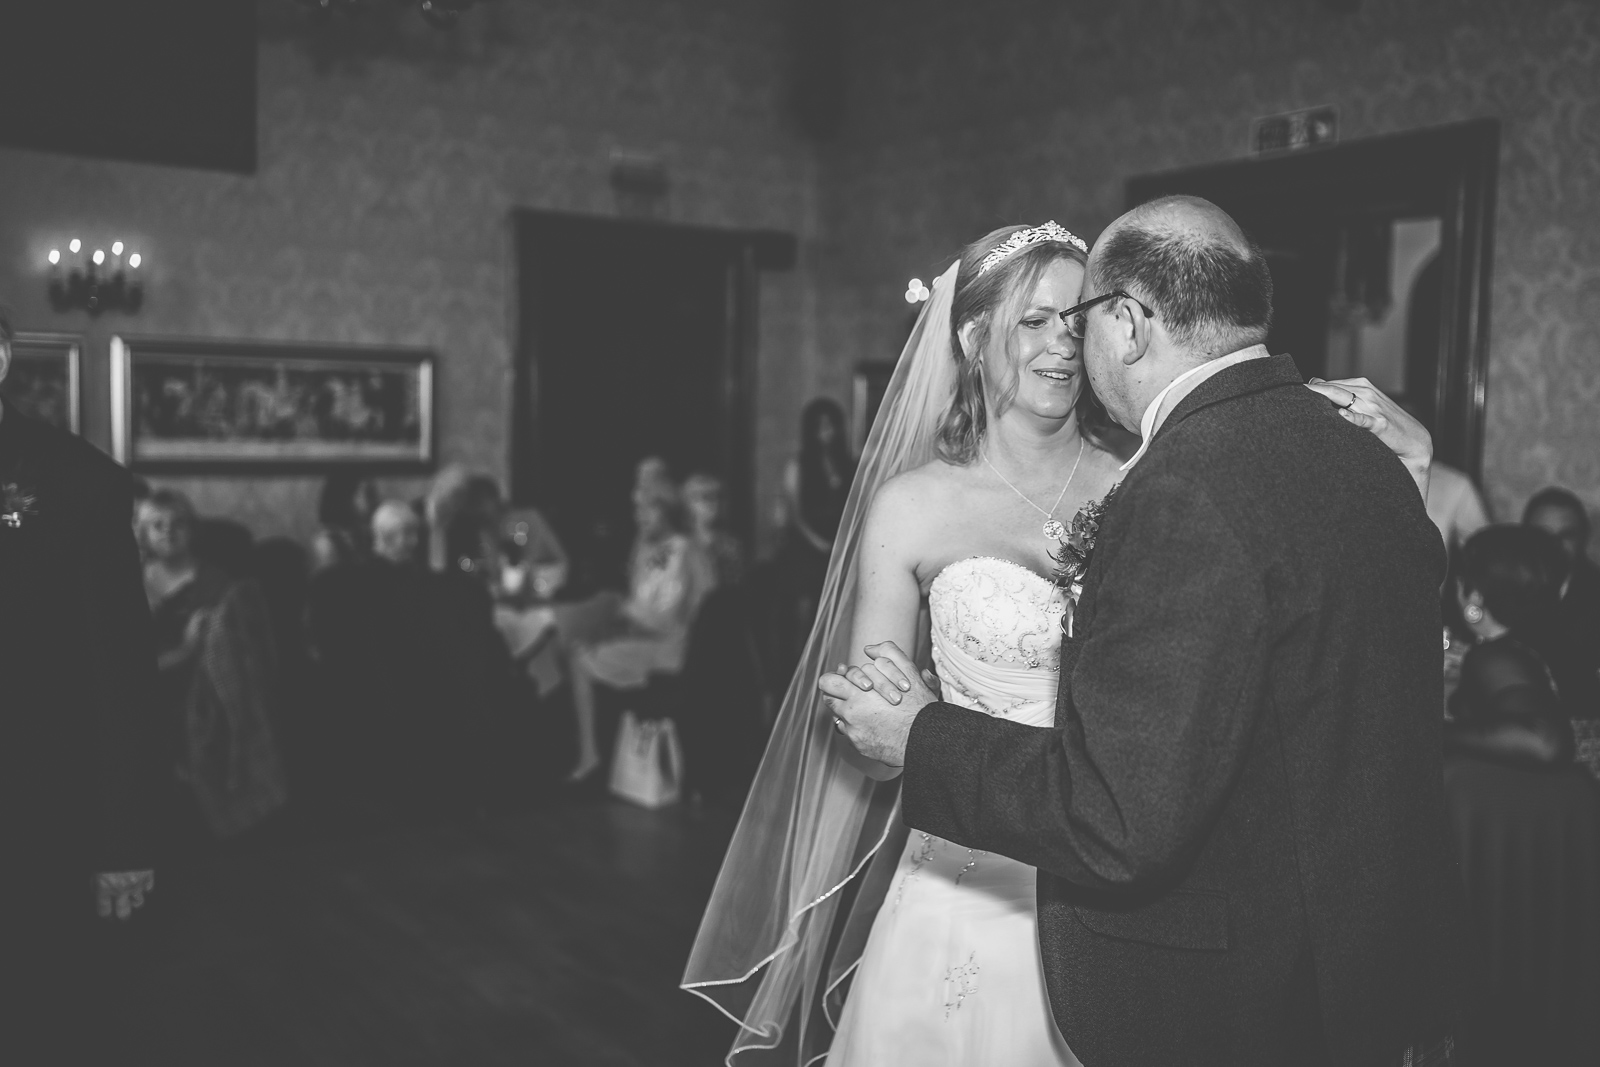 dalhousie_castle_wedding_edinburgh_dearlyphotography (319 of 371).jpg